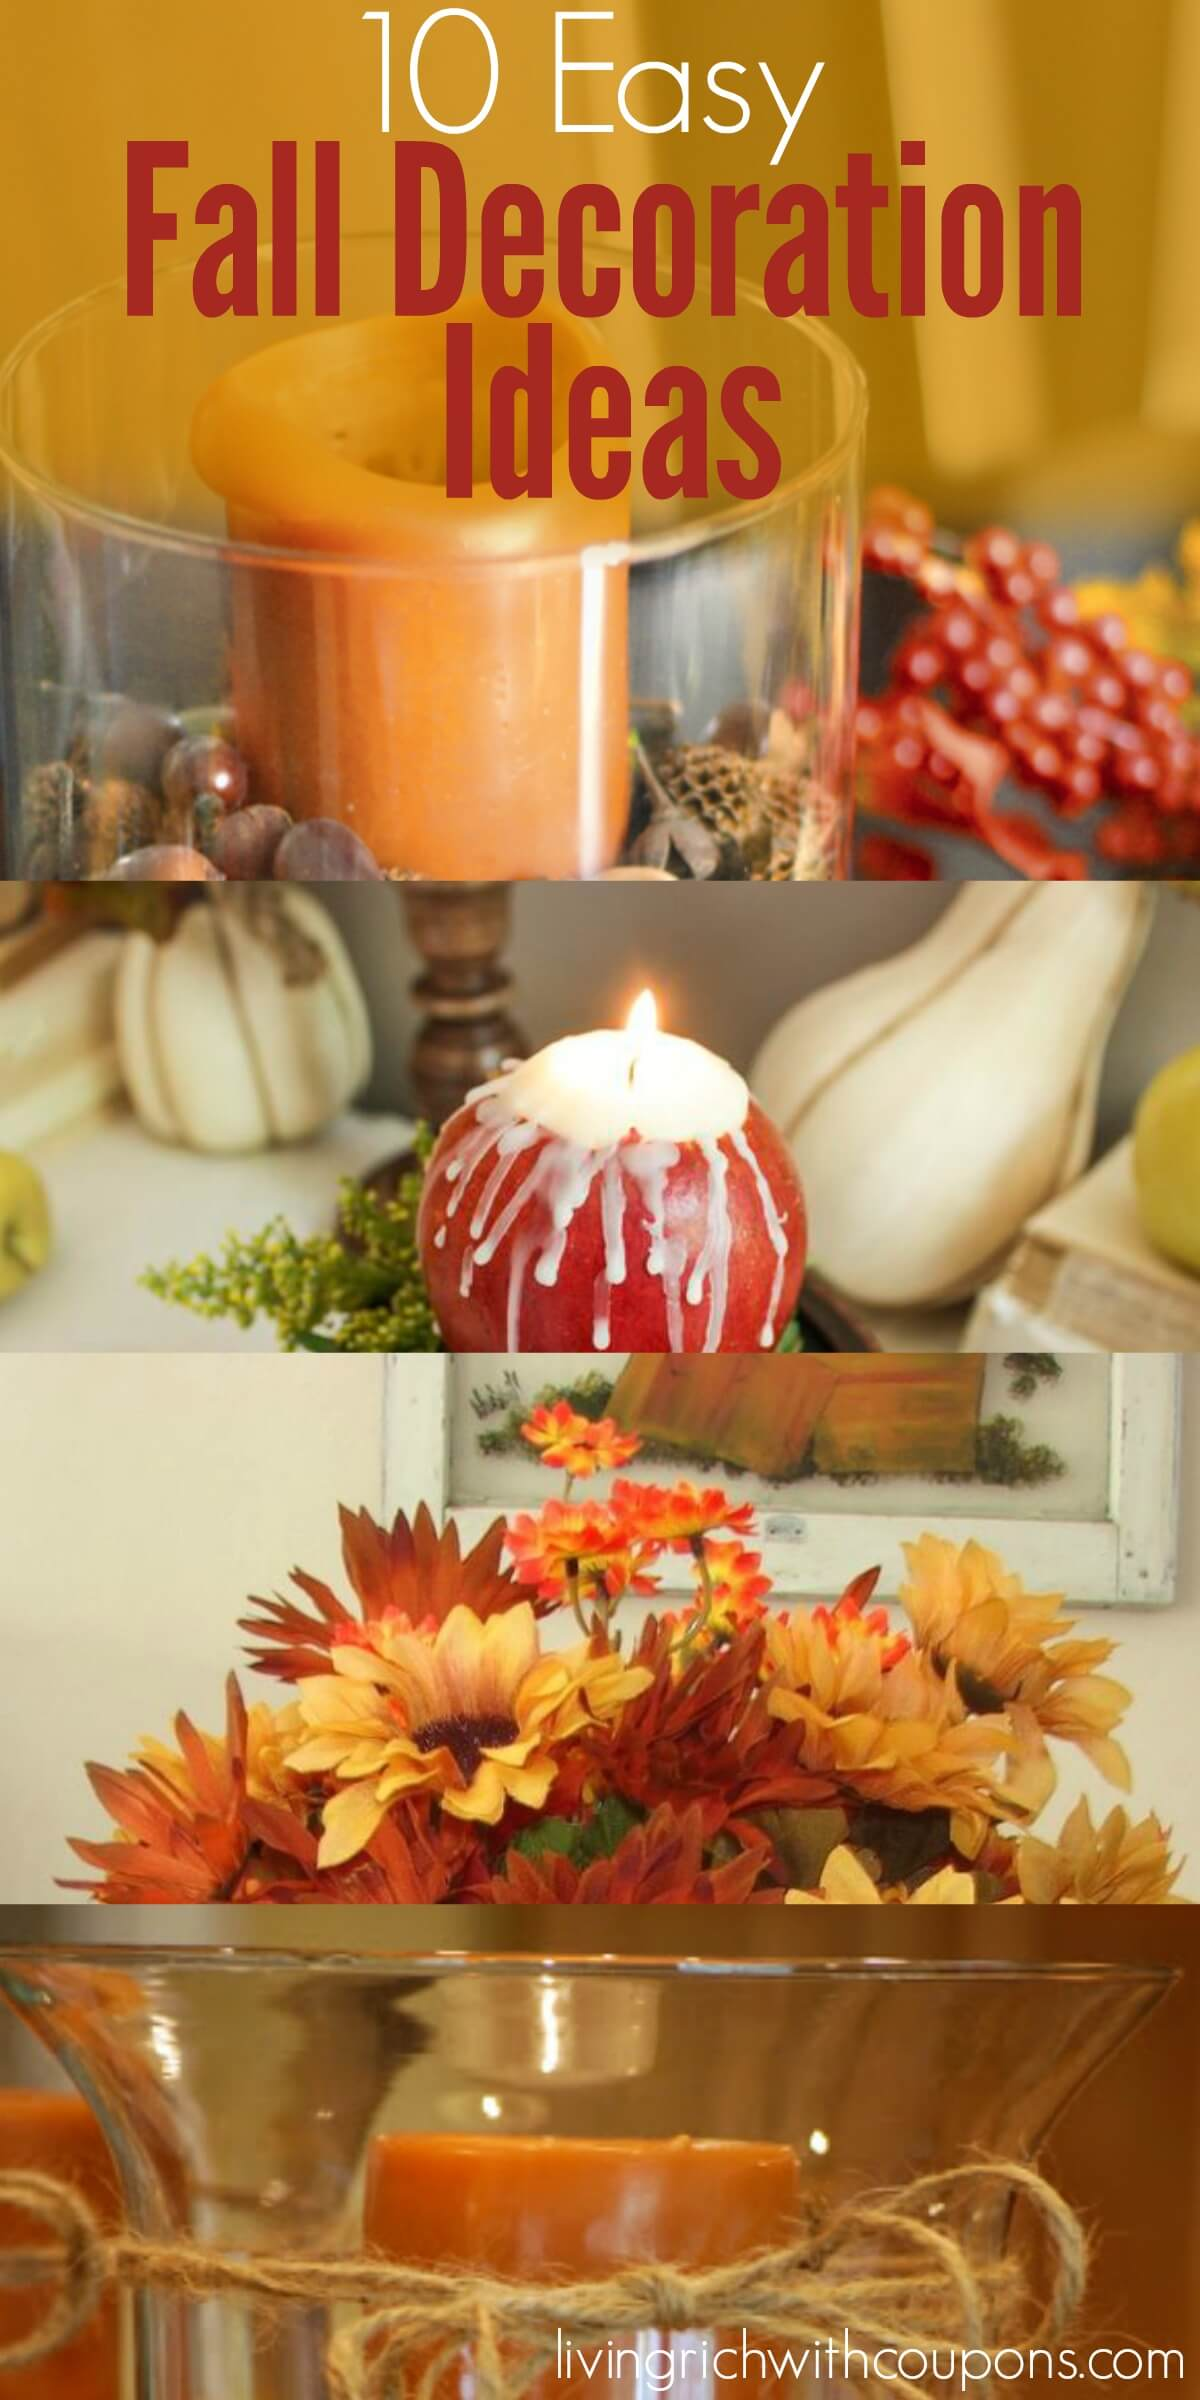 10 easy fall decoration ideas